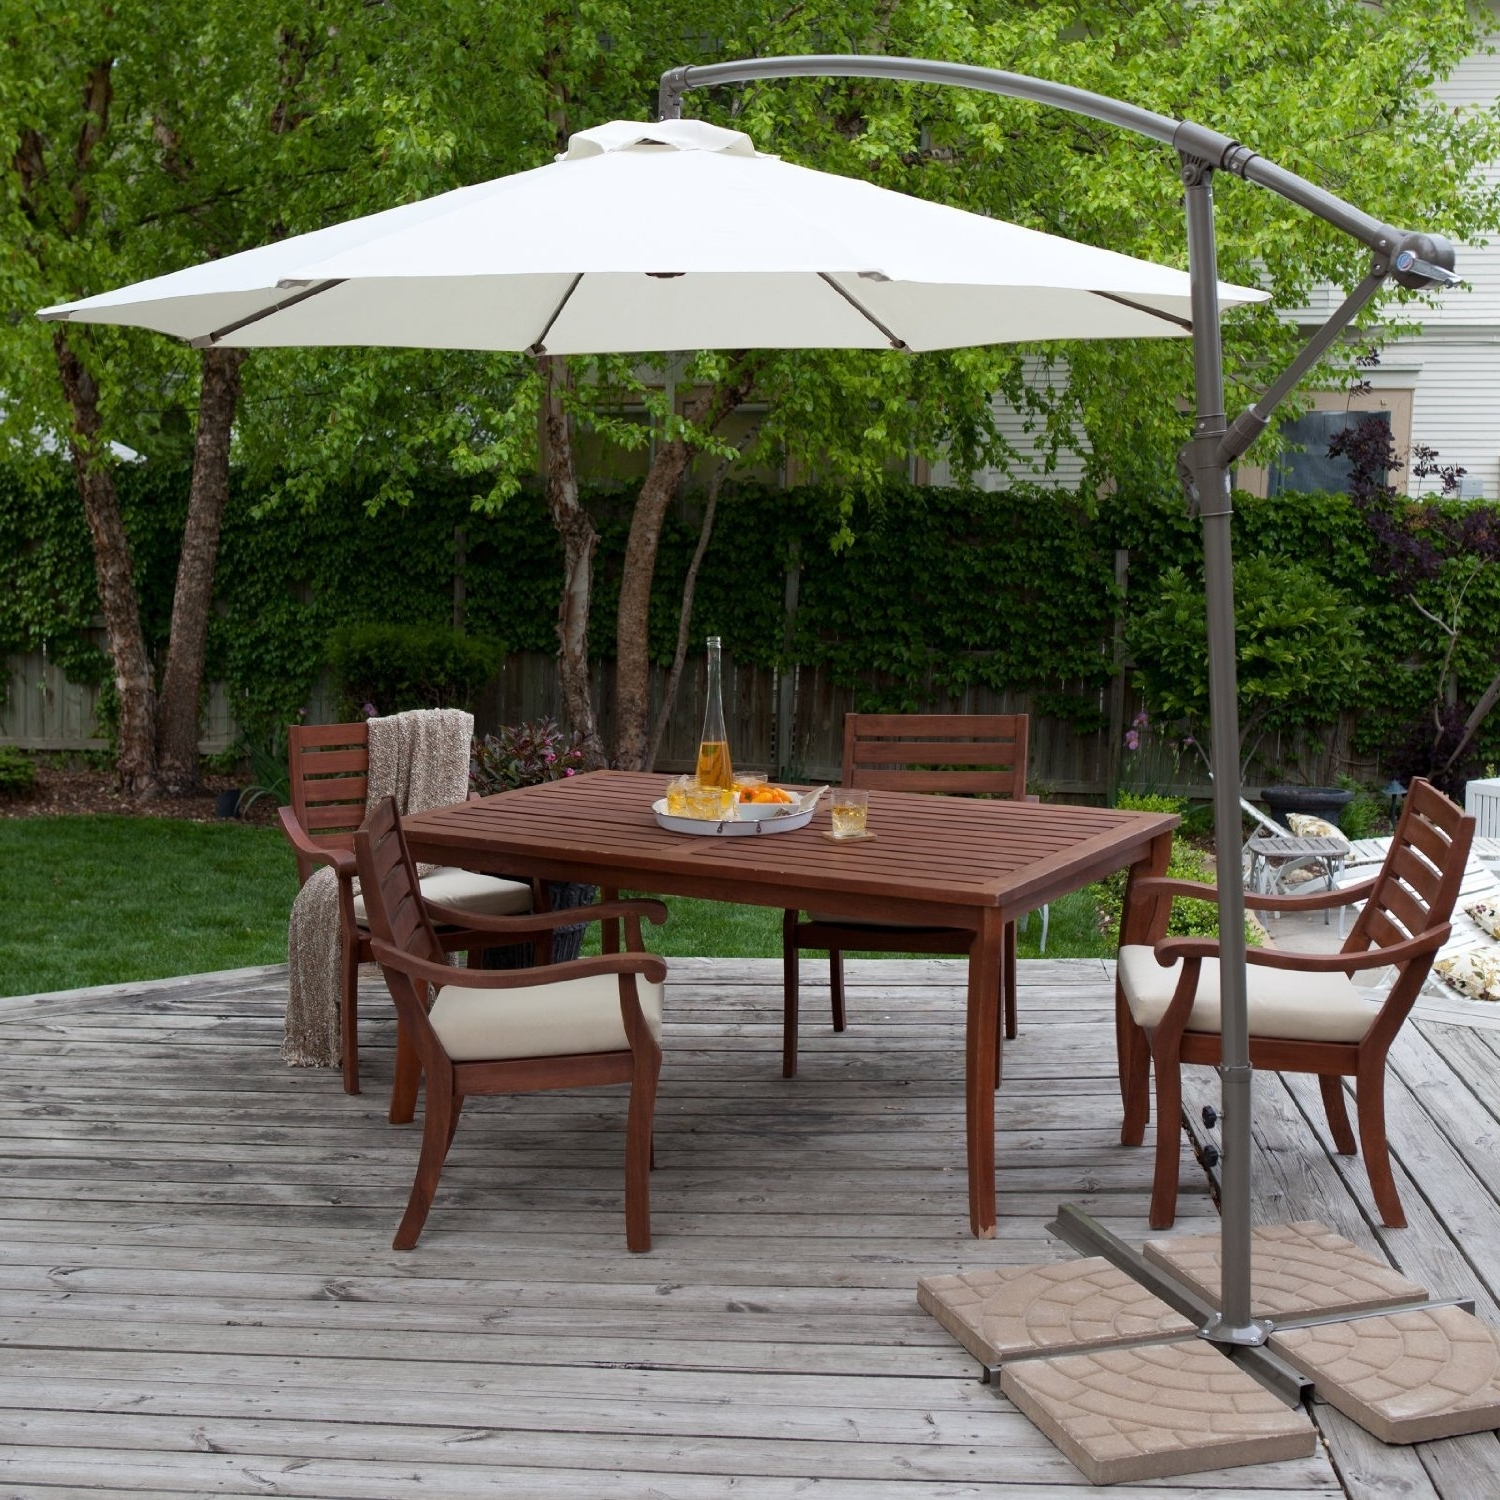 Round White Fabric Patio Umbrella With Black Base Over Dark Brown Intended For Recent Patio Umbrellas With Table (Gallery 11 of 20)